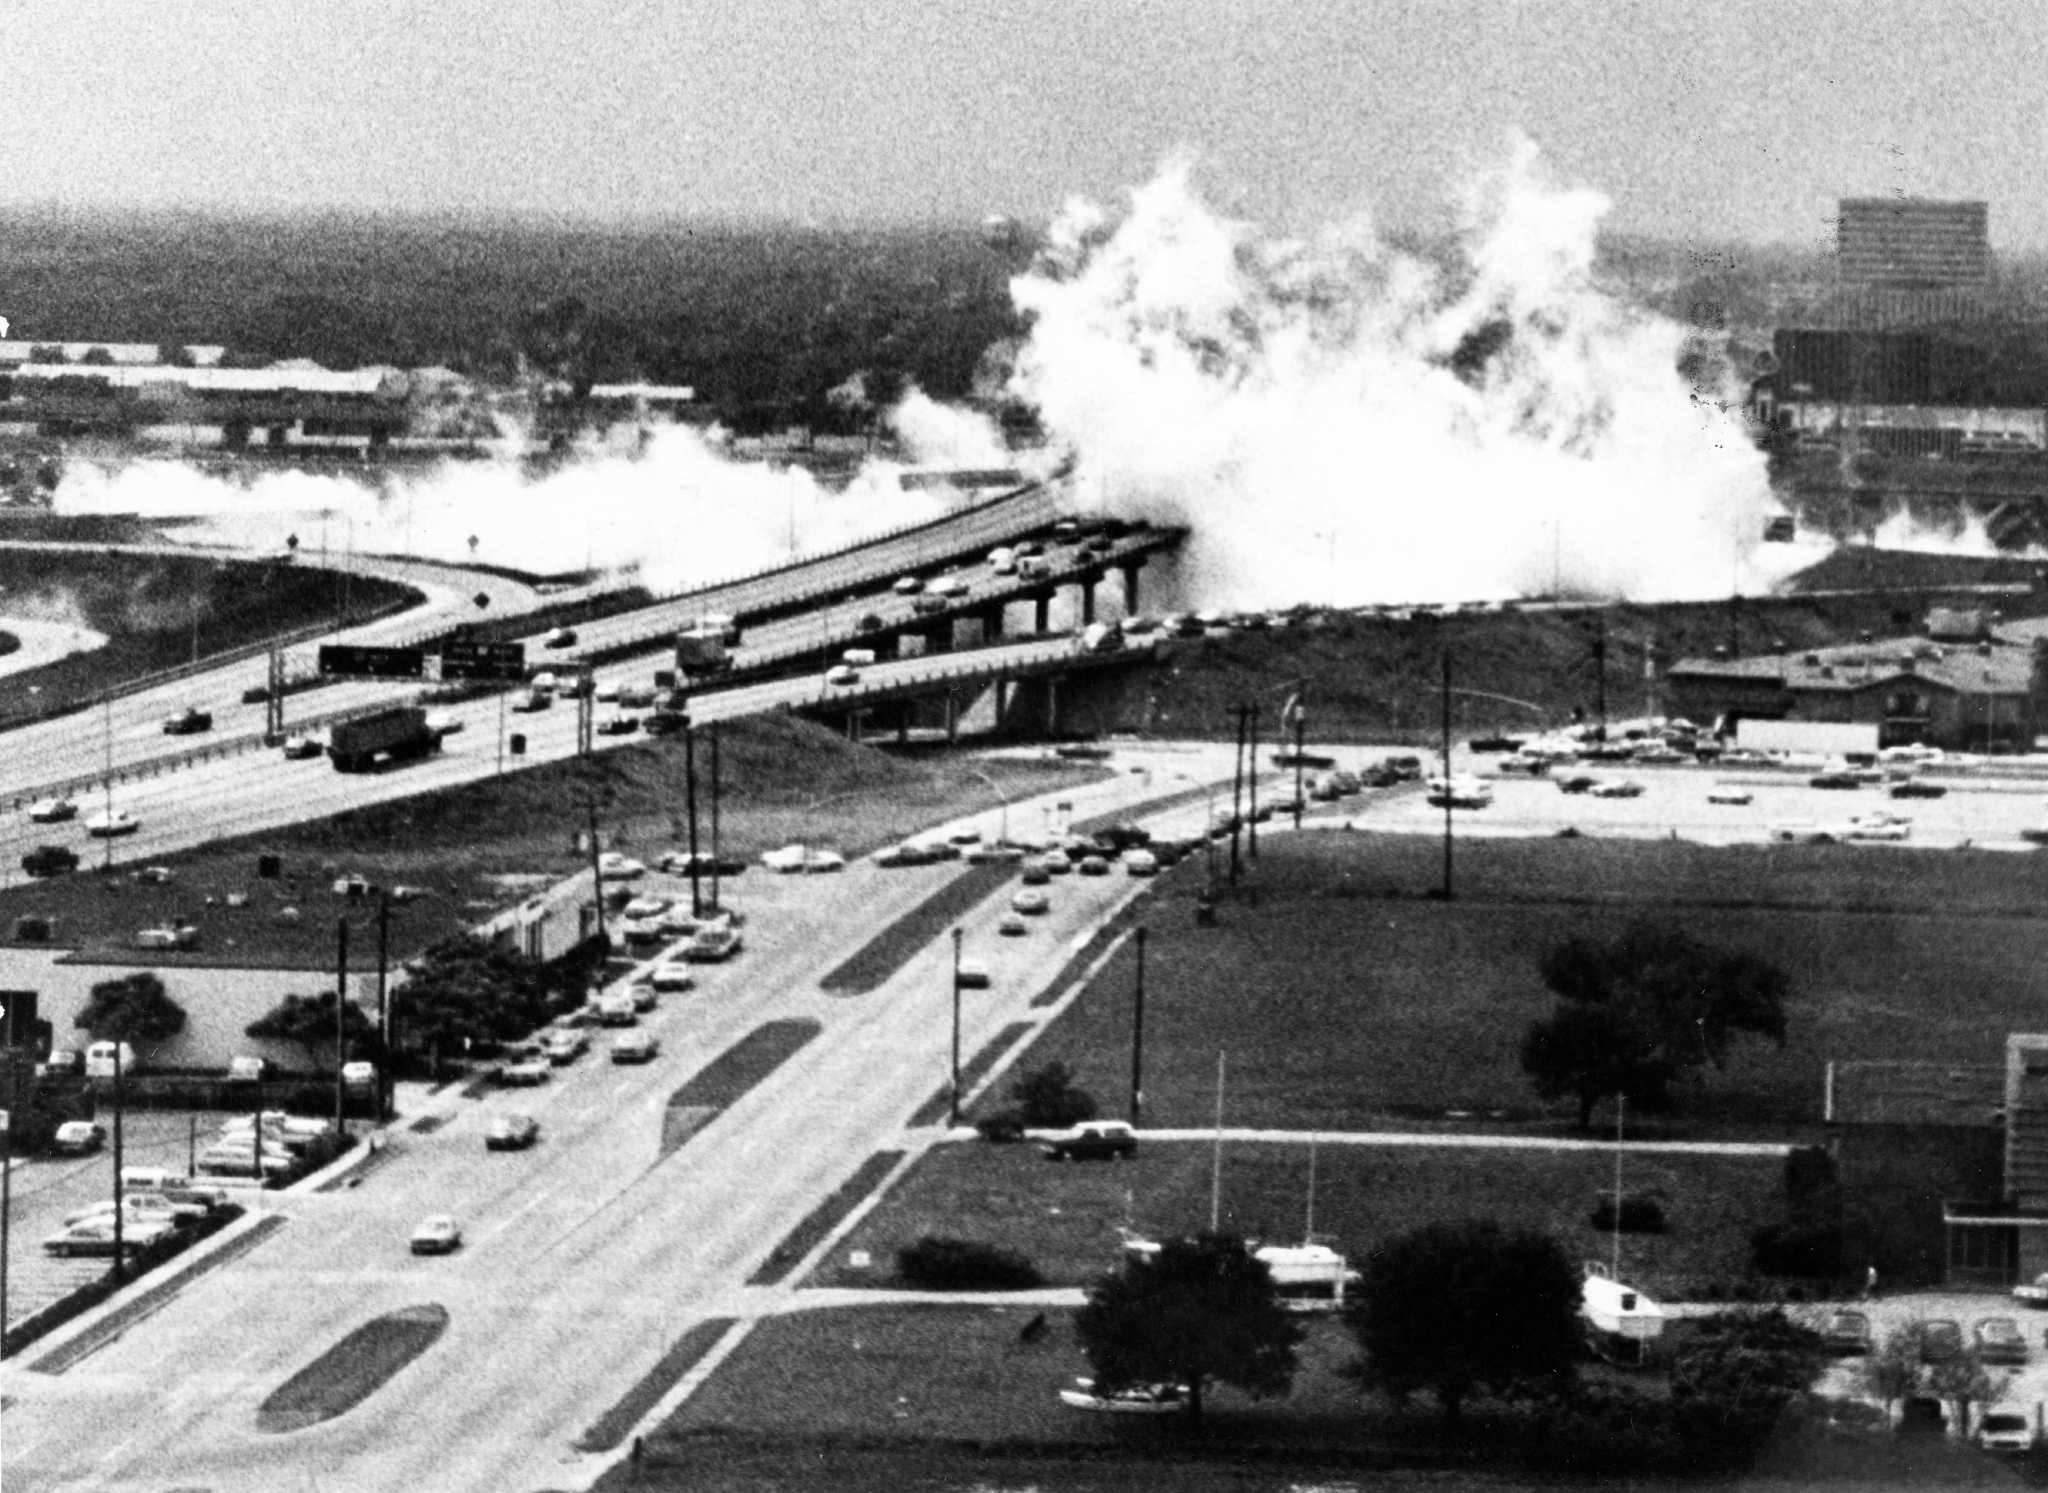 On May 11 An Ammonia Truck Disaster Killed Several